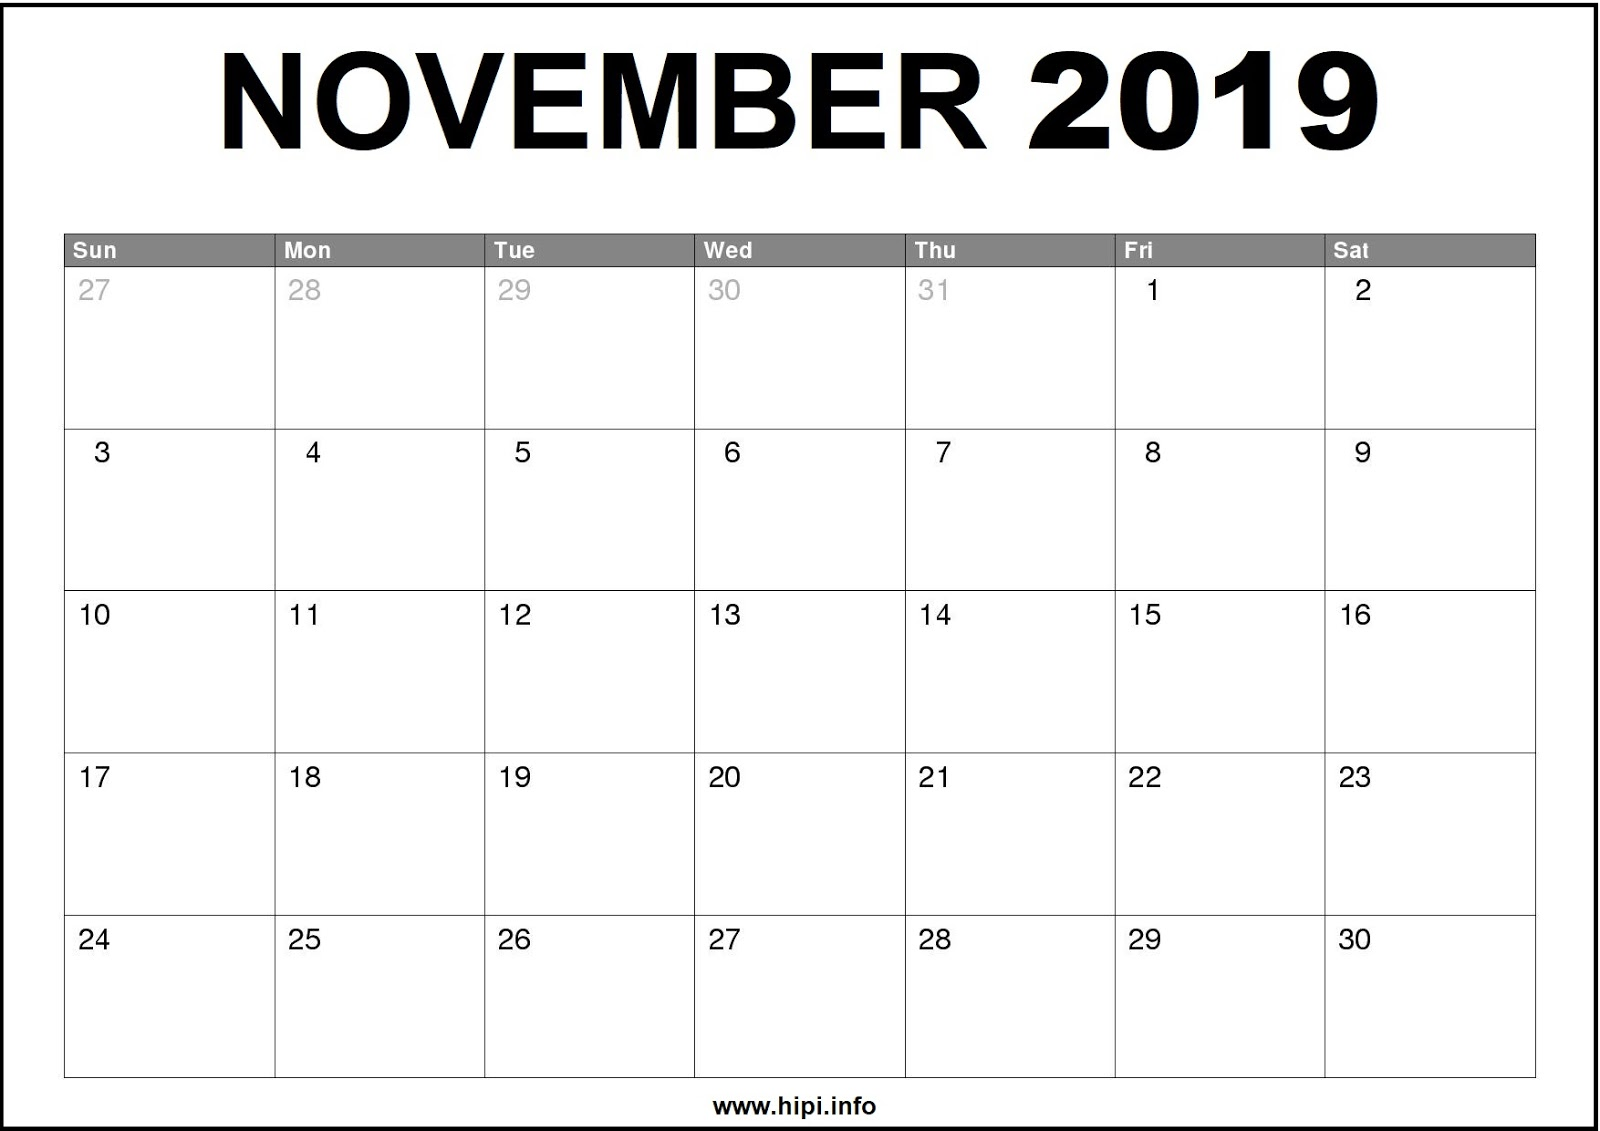 Twitter Headers Facebook Covers Wallpapers Calendars November